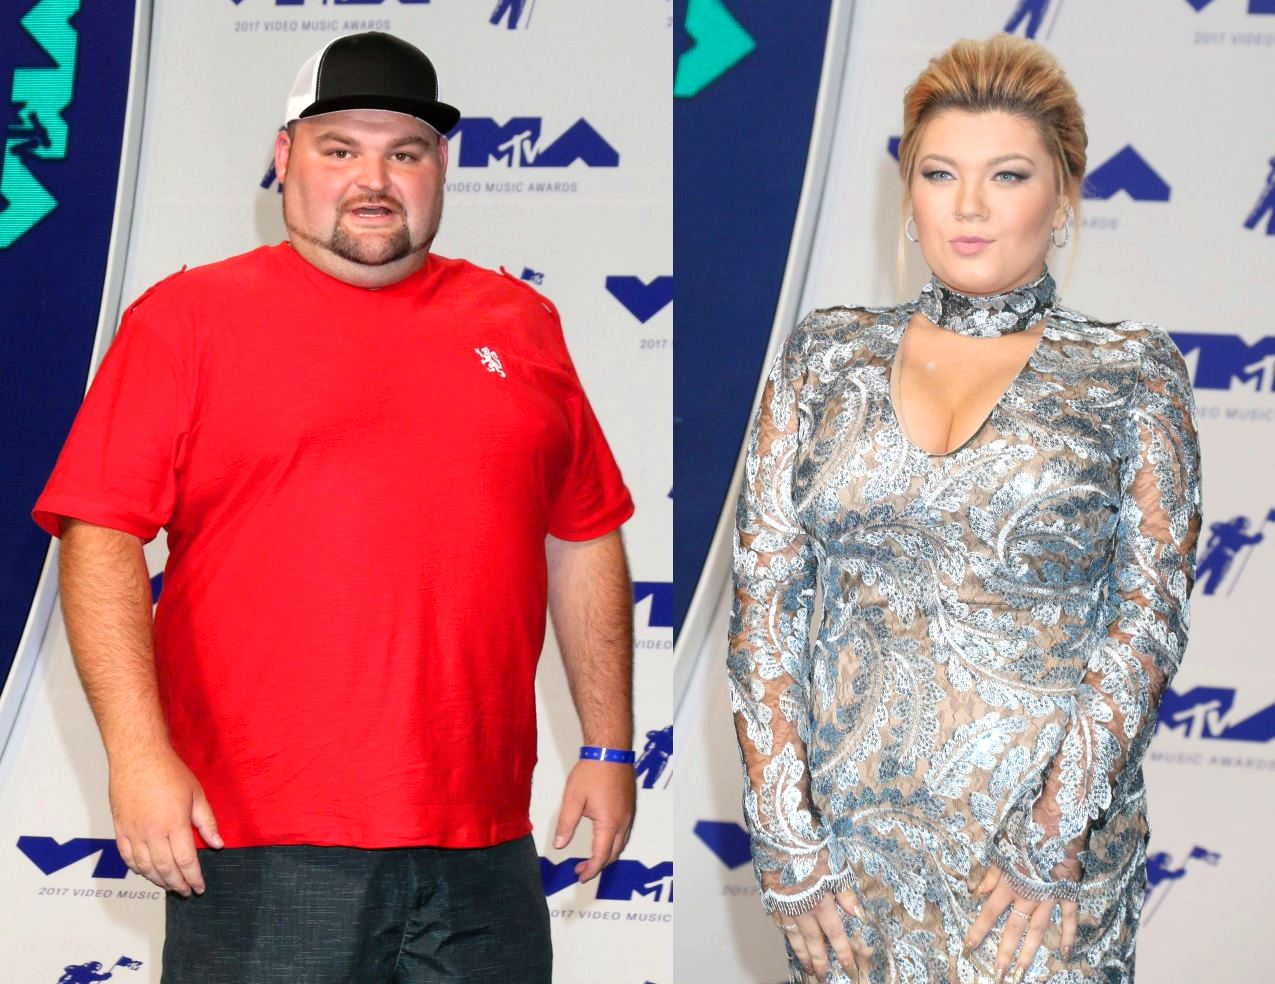 Amber Portwood Slams Ex-Husband Gary's Current Wife – Calls Her A 'Homewrecker' After Daughter Leah Admits She Prefers Kristina!